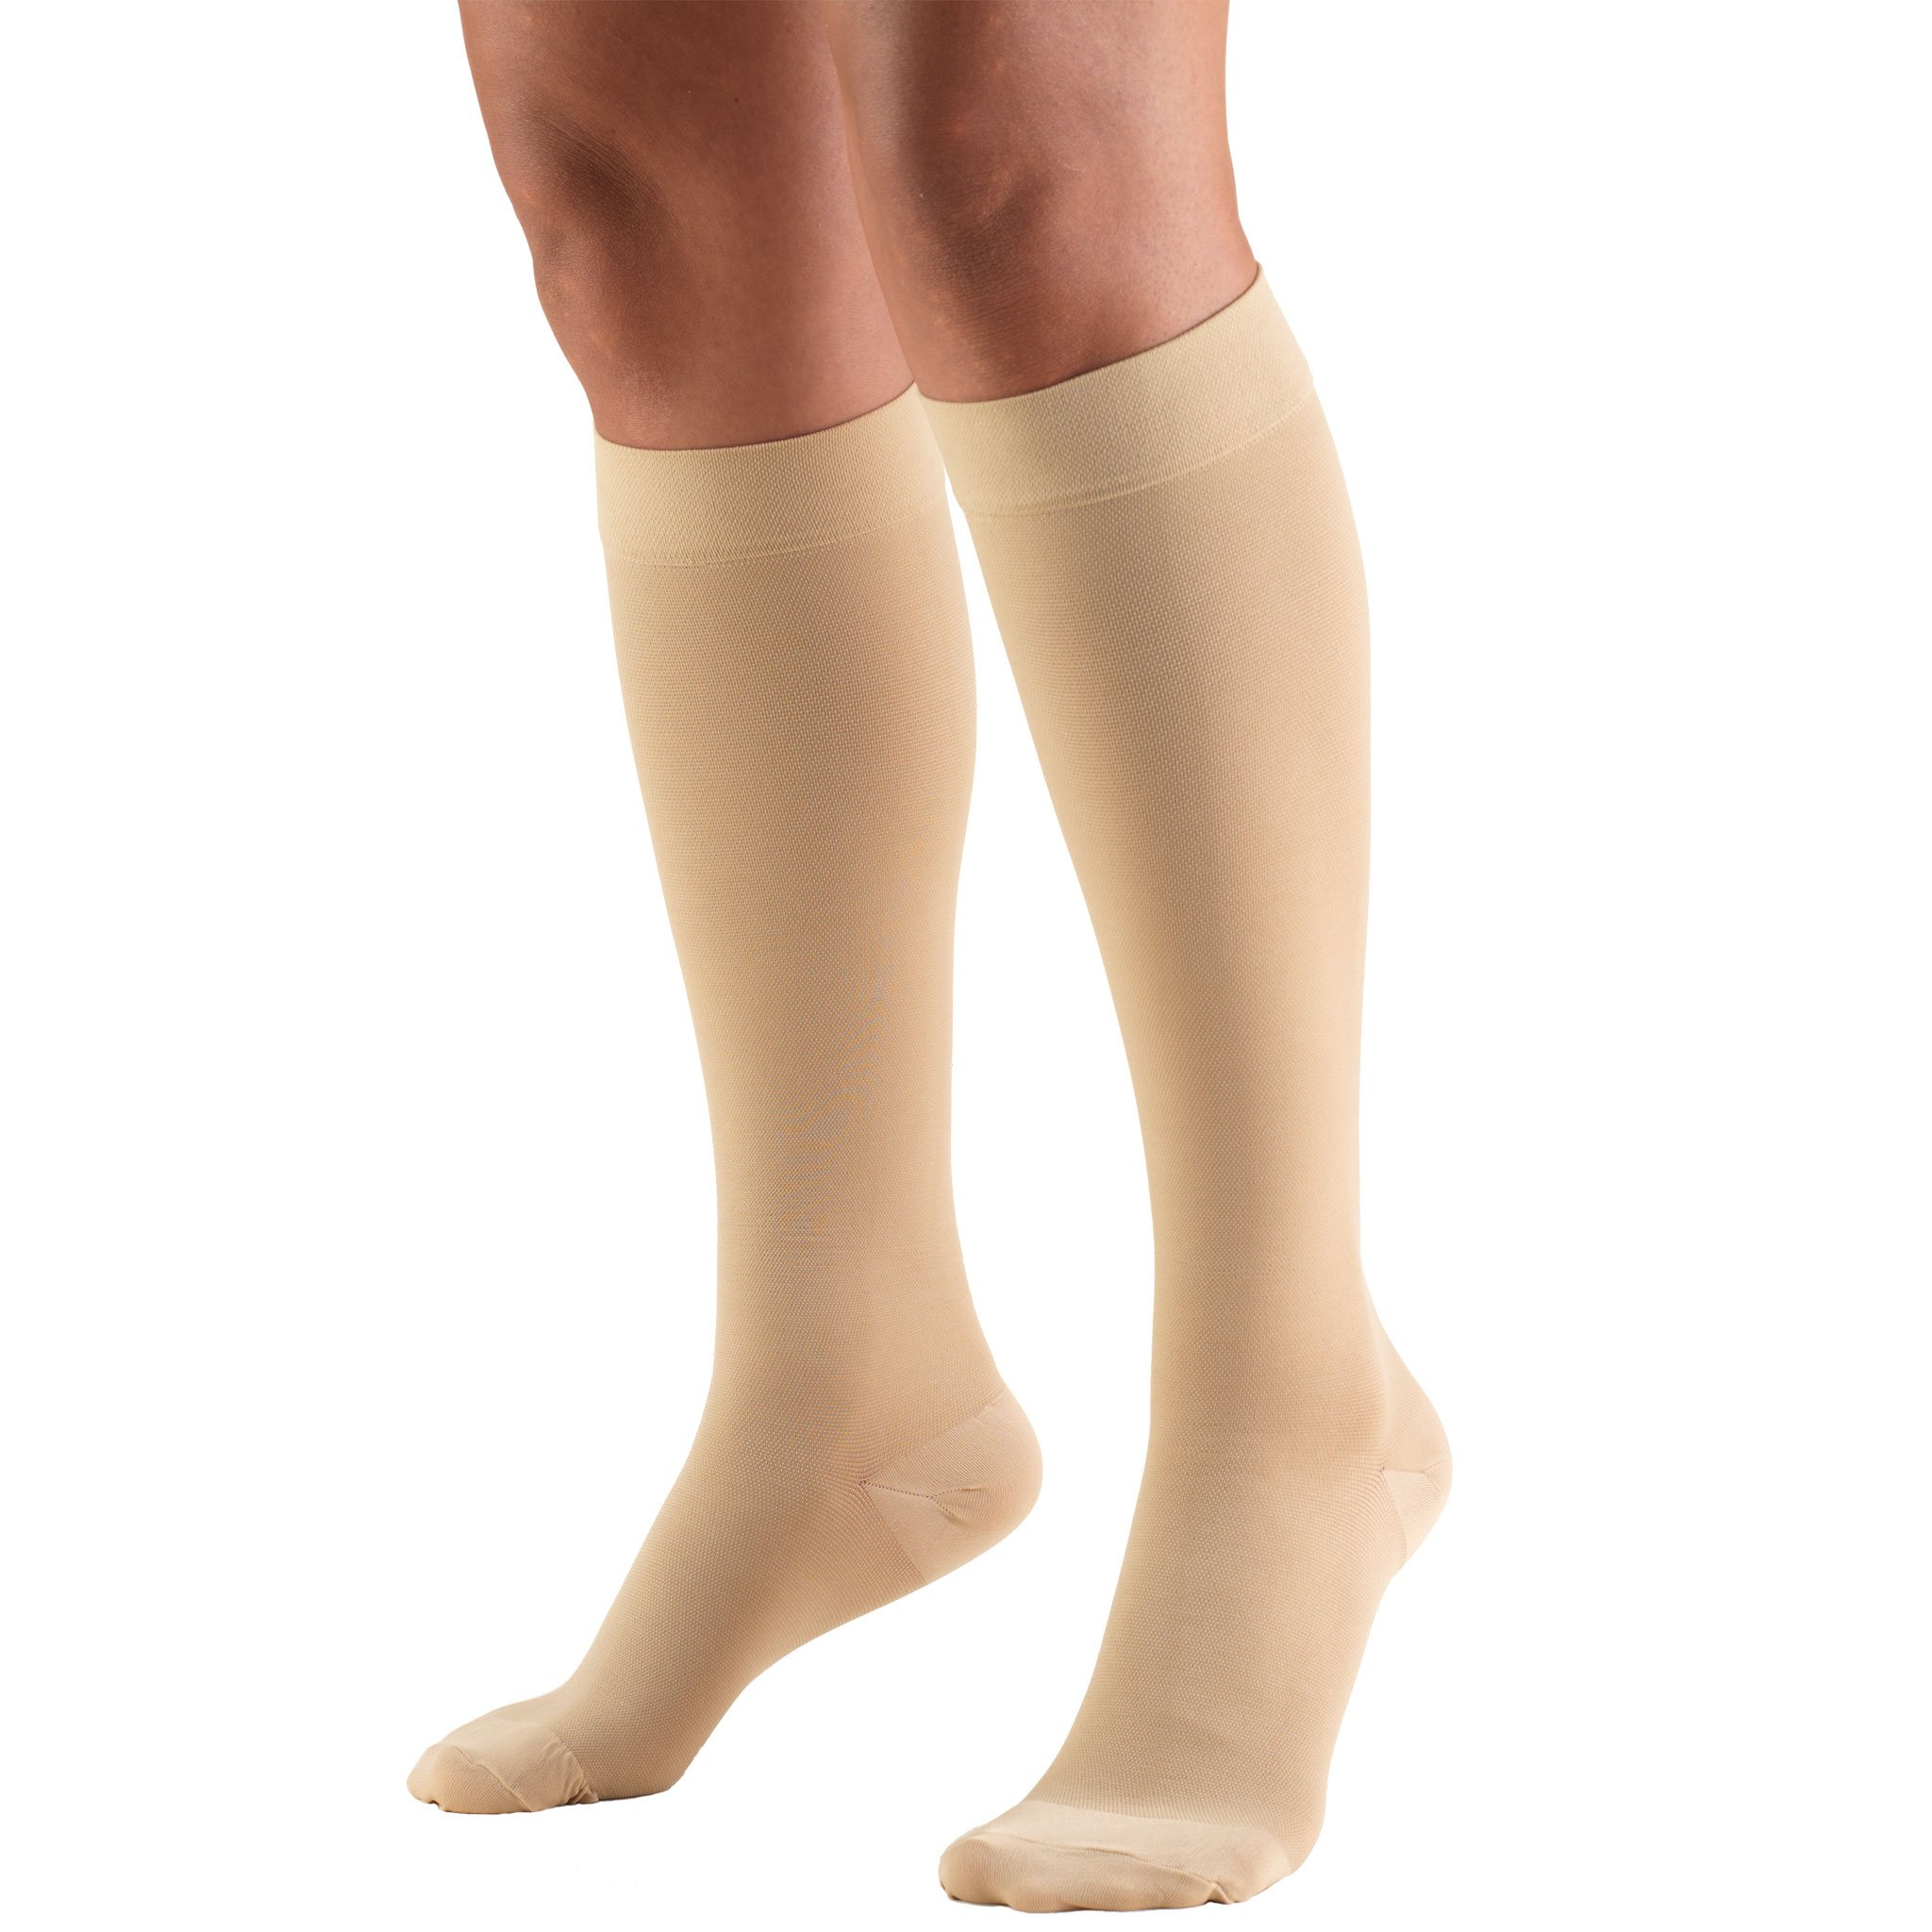 Truform Closed Toe, Knee High 20-30 mmHg Compression Stockings, Beige, Small, Short Length